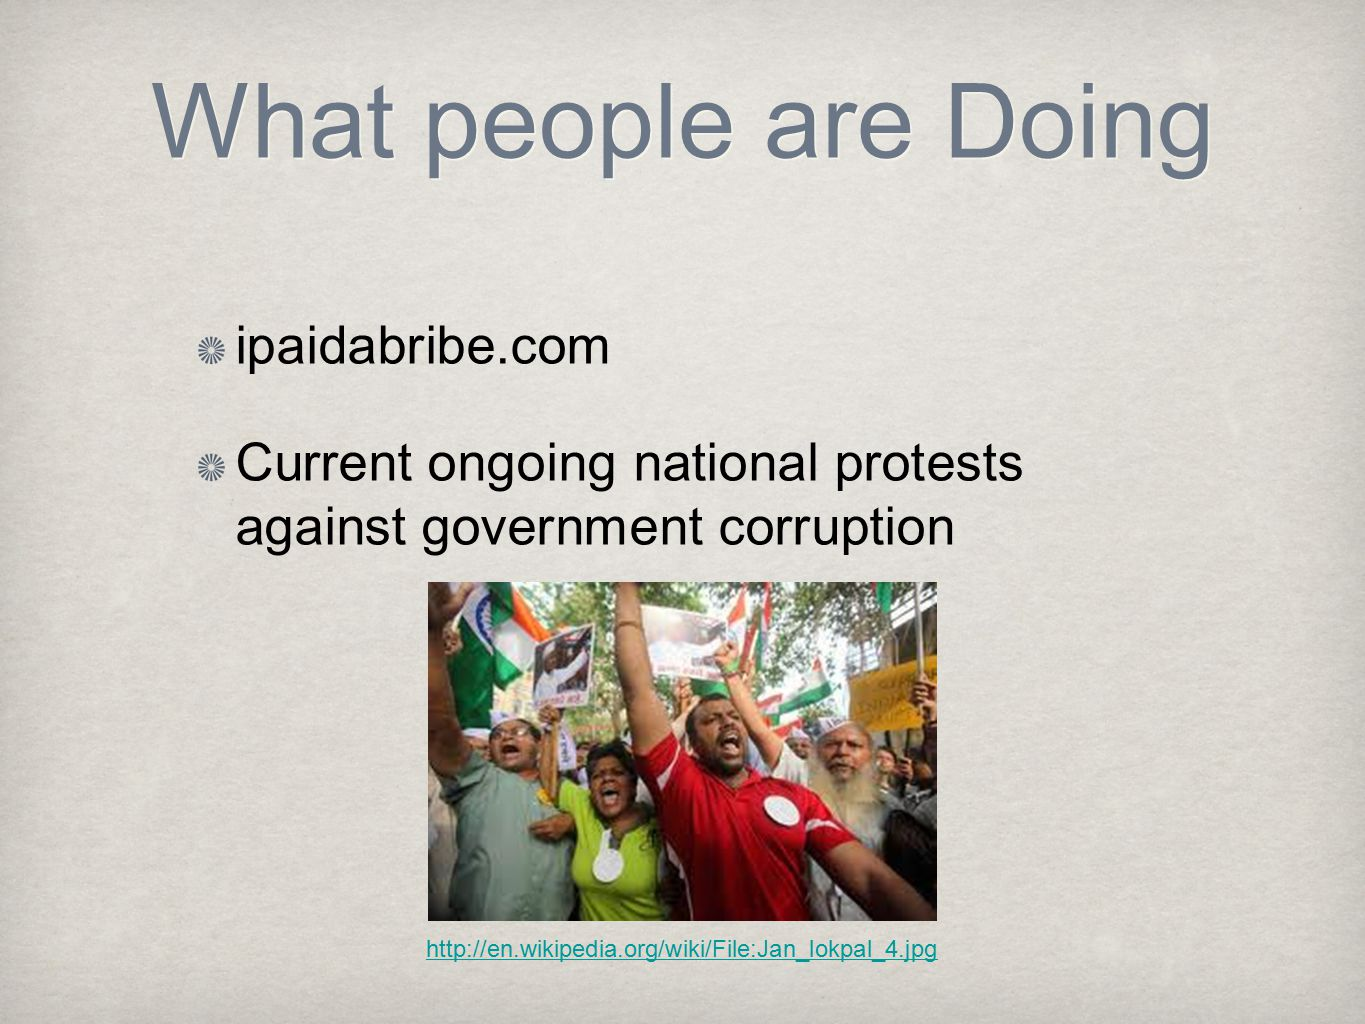 What people are Doing ipaidabribe.com Current ongoing national protests against government corruption http://en.wikipedia.org/wiki/File:Jan_lokpal_4.jpg